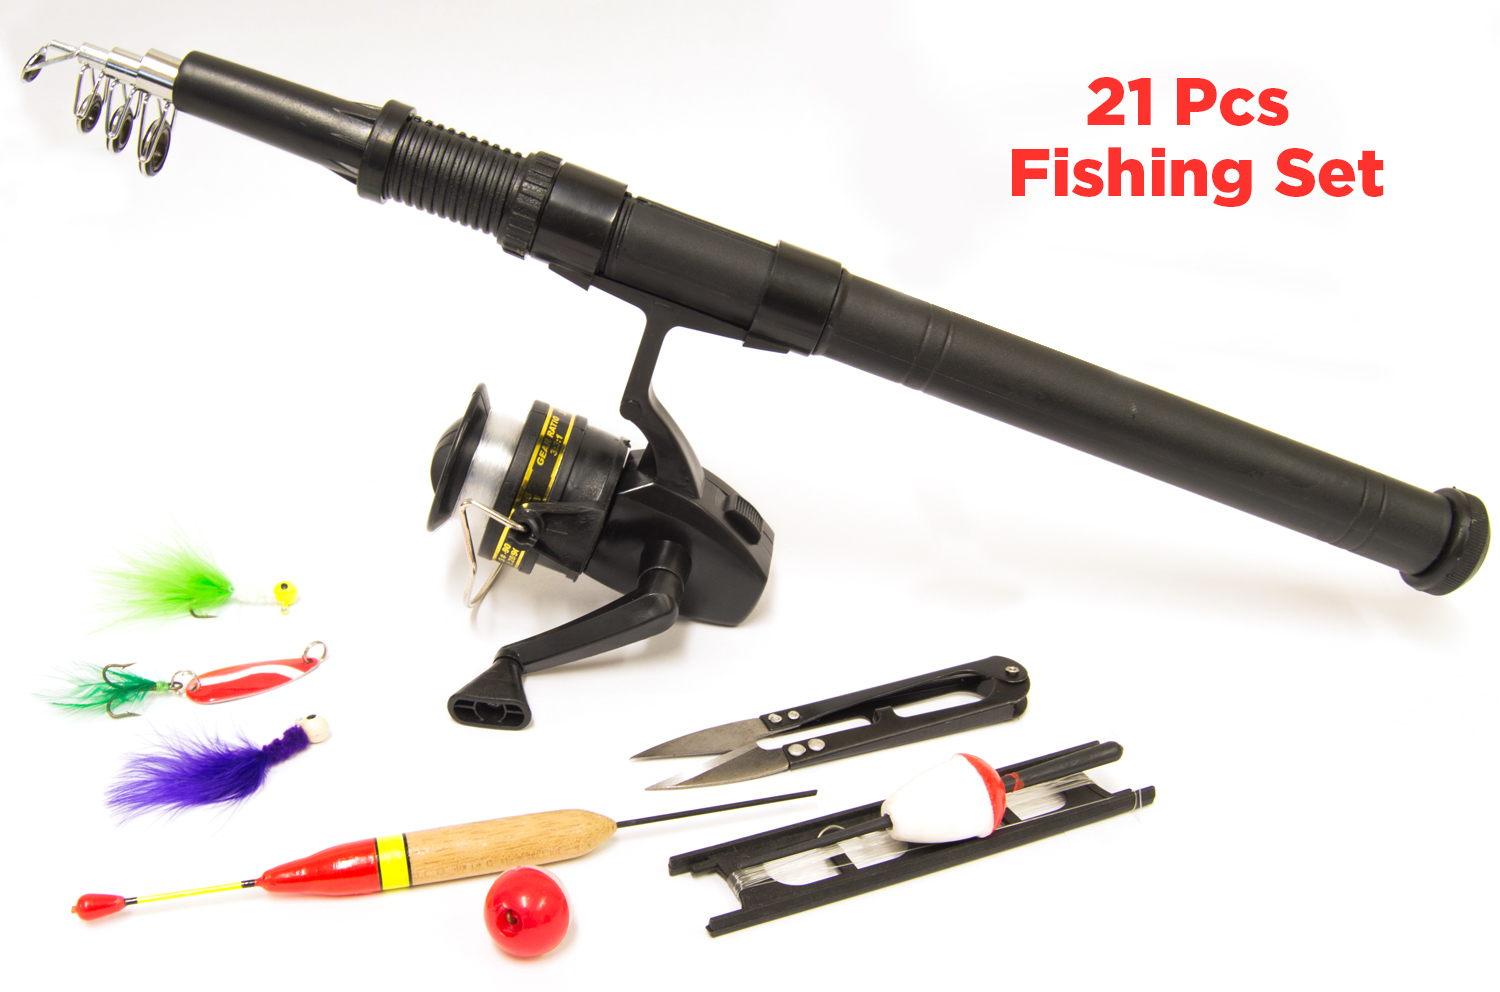 Starter fishing kit set for beginners kids carp coarse rod for Best fishing pole for beginners